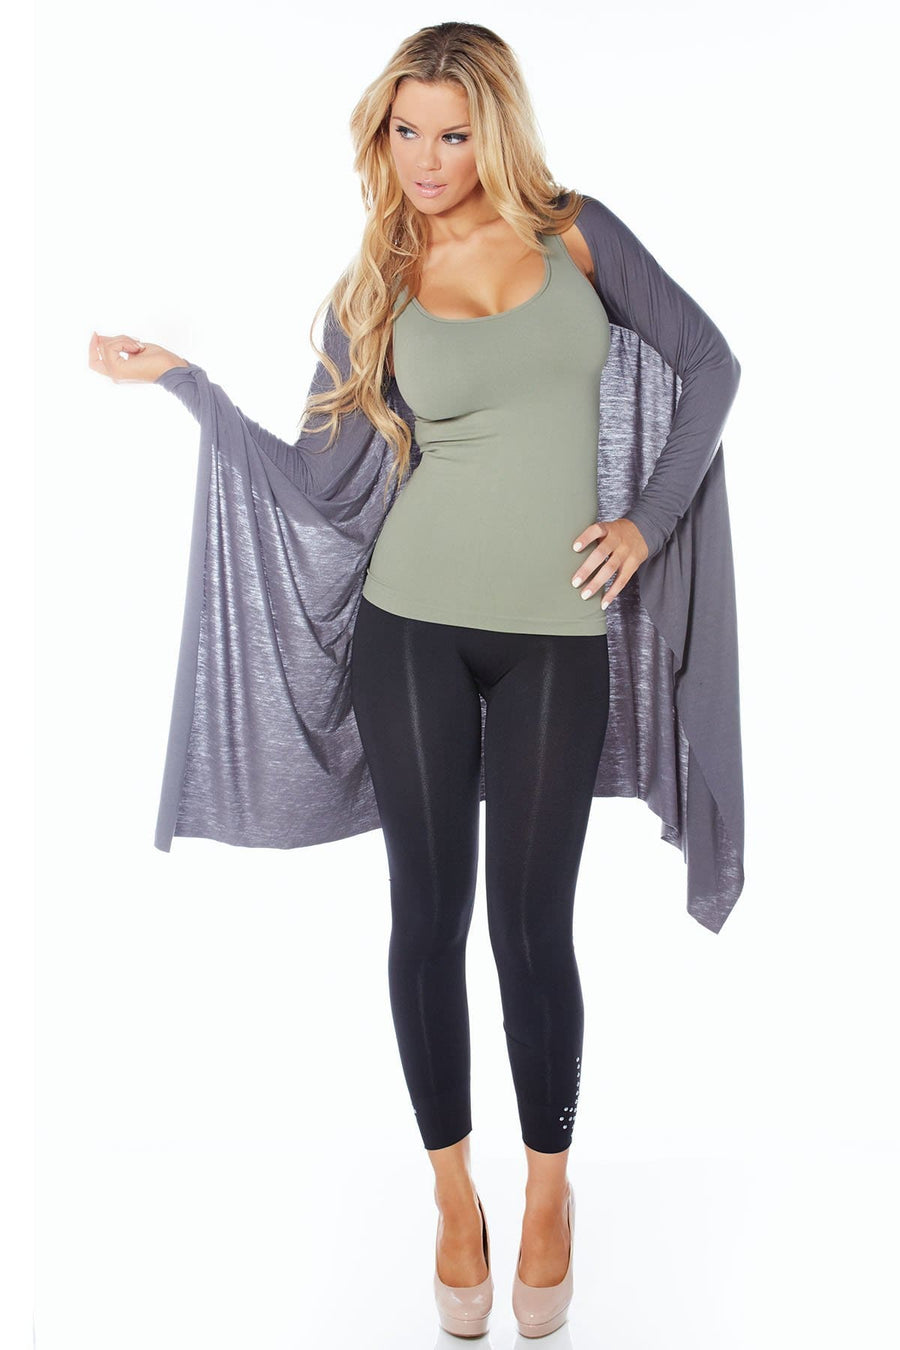 Sexy Snuggle Knit Shrug - Rhonda Shear